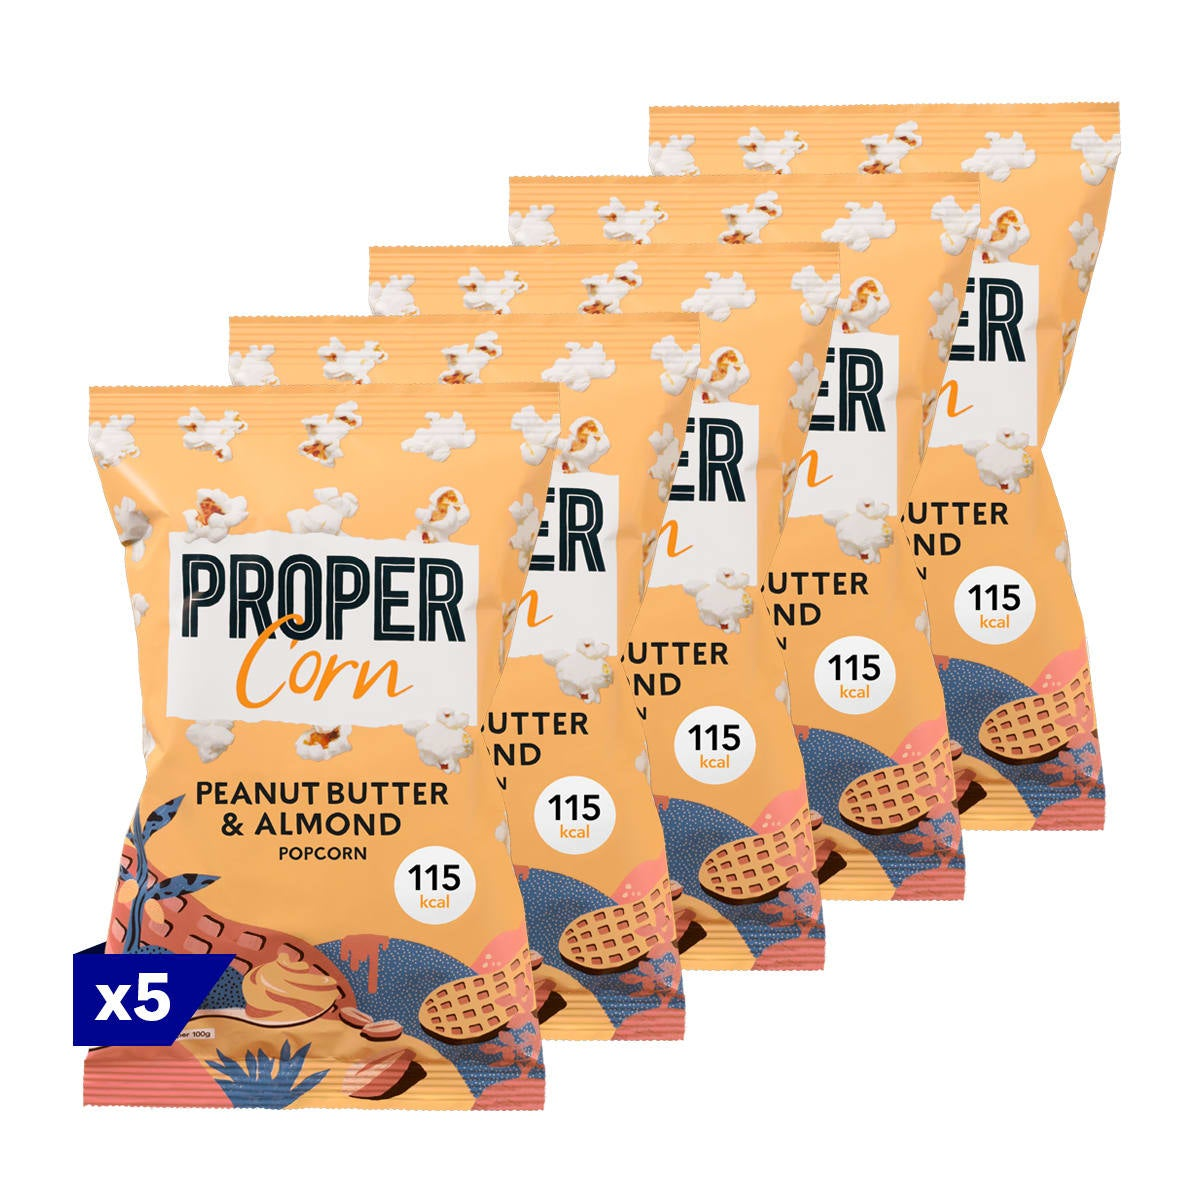 Pack of 5, Propercorn Peanut Butter and Almond Popcorn, 25g bag, smooth blend of peanut and almond, 4 SmartPoints values per bag, gluten free, suitable for vegans